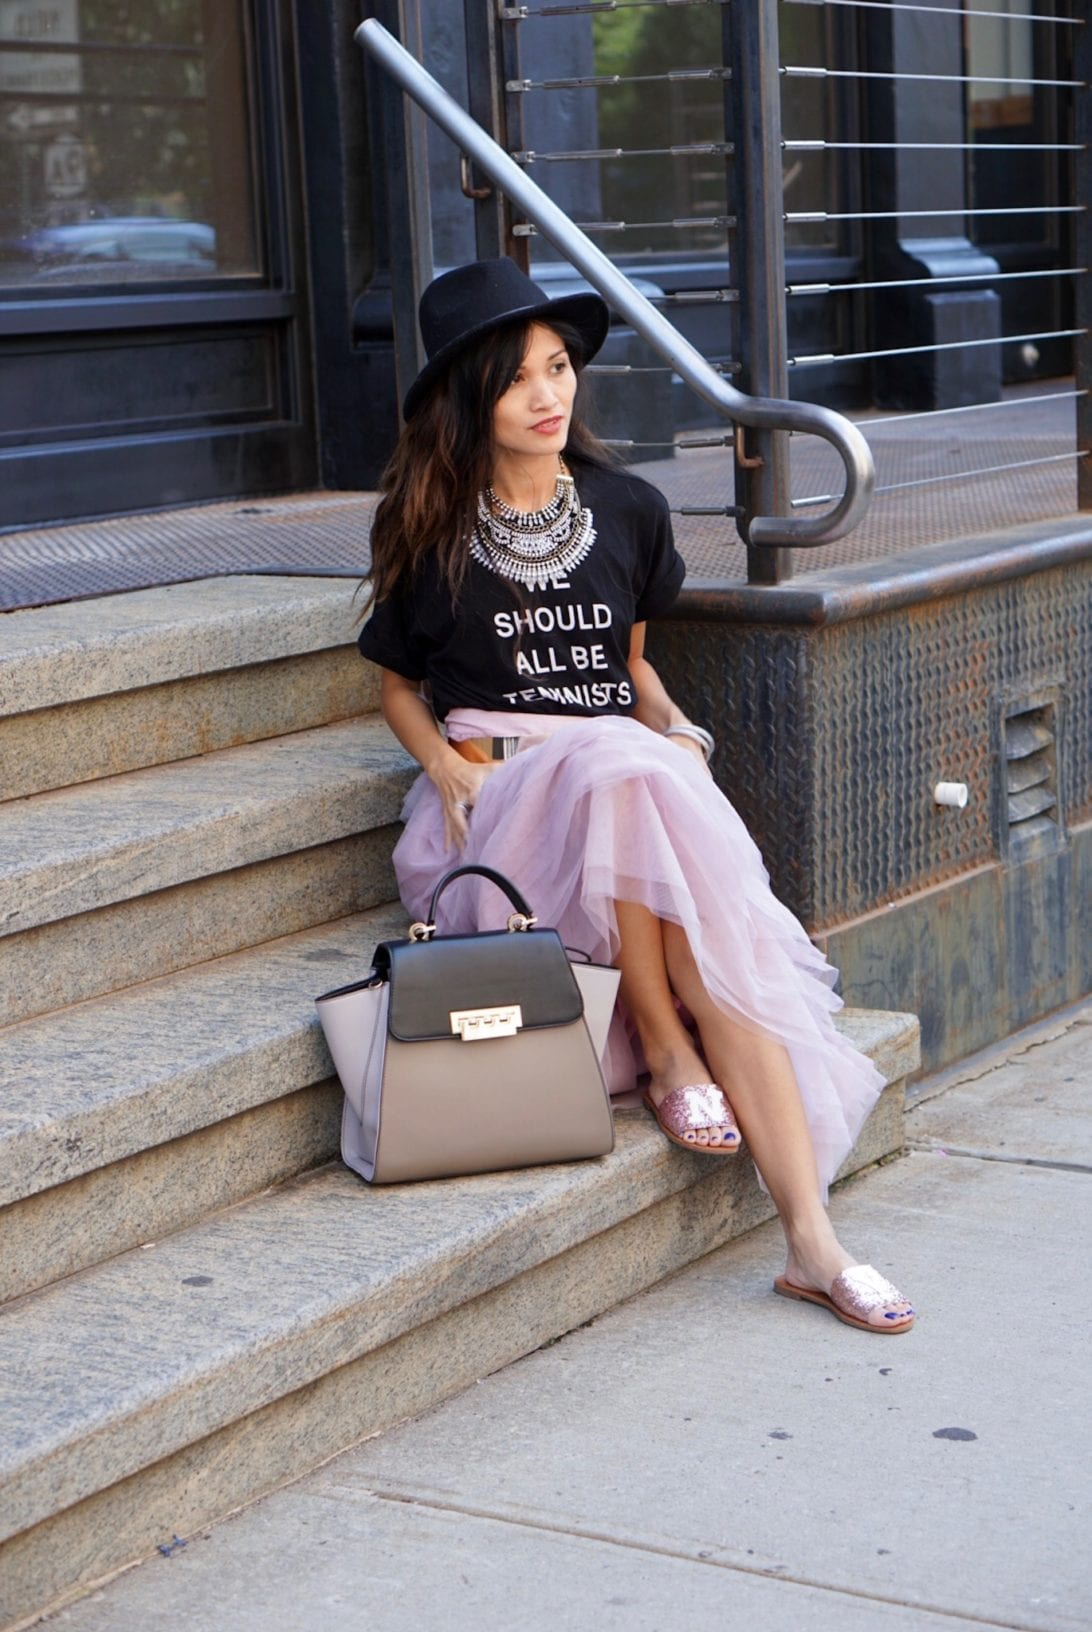 NYC STREET STYLE, New York FASHION WEEK, New York CITY, NYFW 2017, NYFW STREET STYLE, STREET STYLE, FEMINIST, TULLE SKIRT, SEX AND THE CITY OUTFIT, NY GLITTER FLATS, ZAC ZAC POSEN BAG, FEDORA